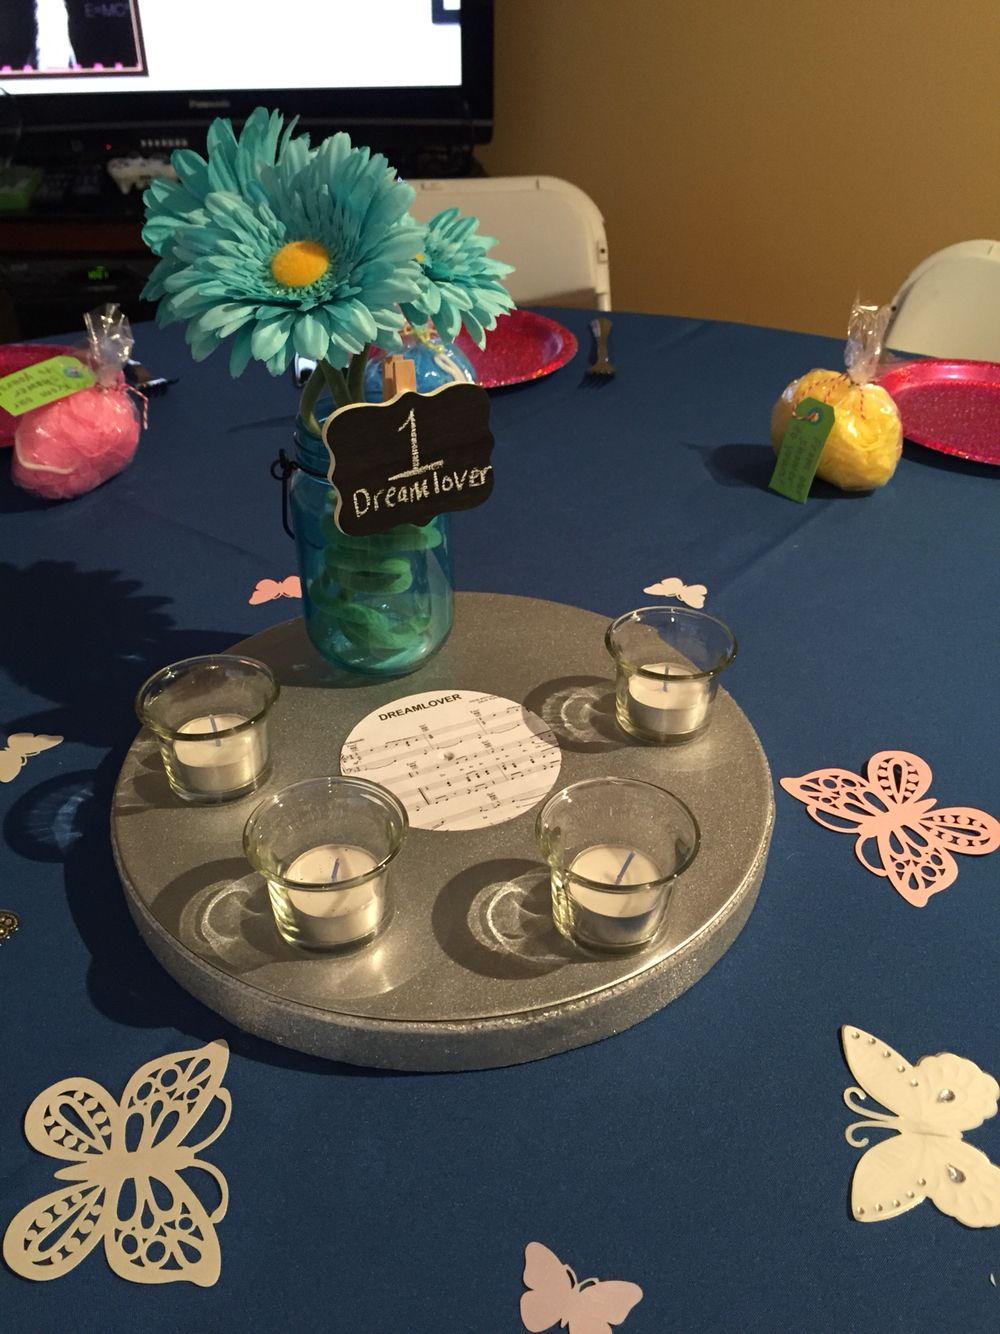 """Blue centerpiece for Mariah Carey themed bridal shower featuring """"Dreamlover"""" sheet music."""